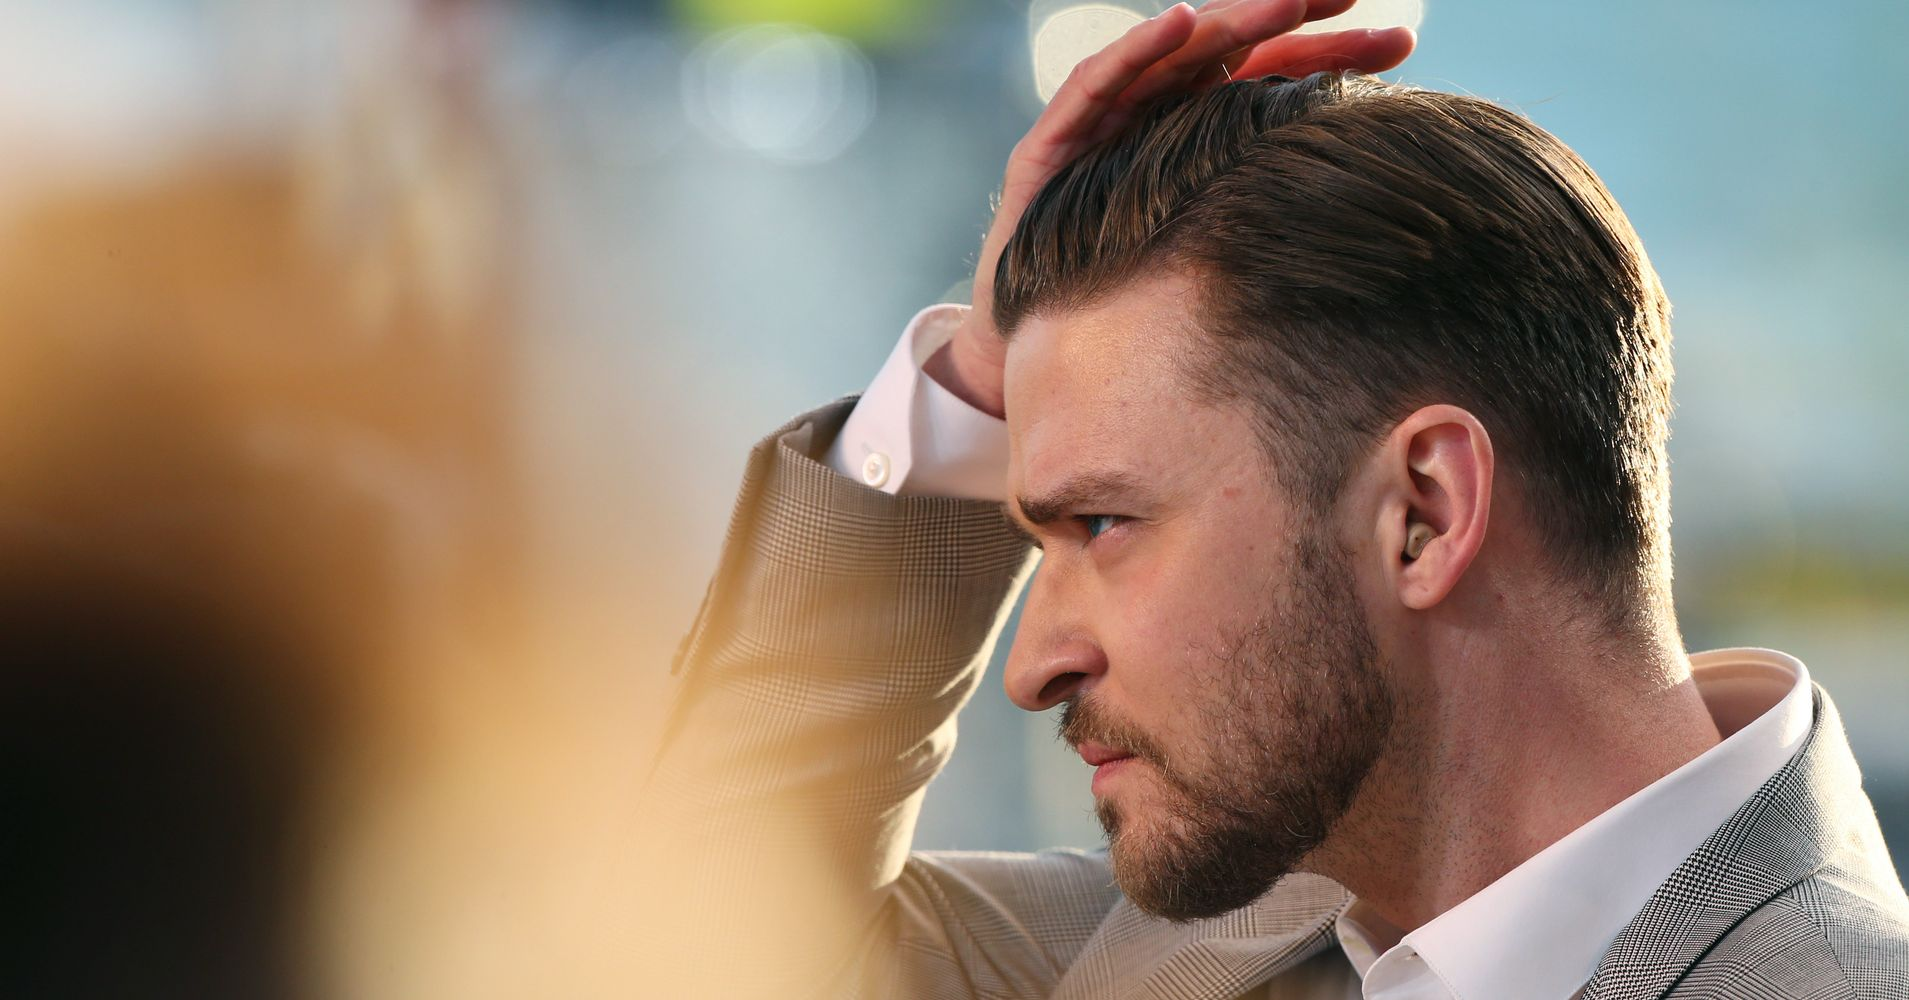 Show These Short Mens Hairstyles To Your Barber Huffpost Life